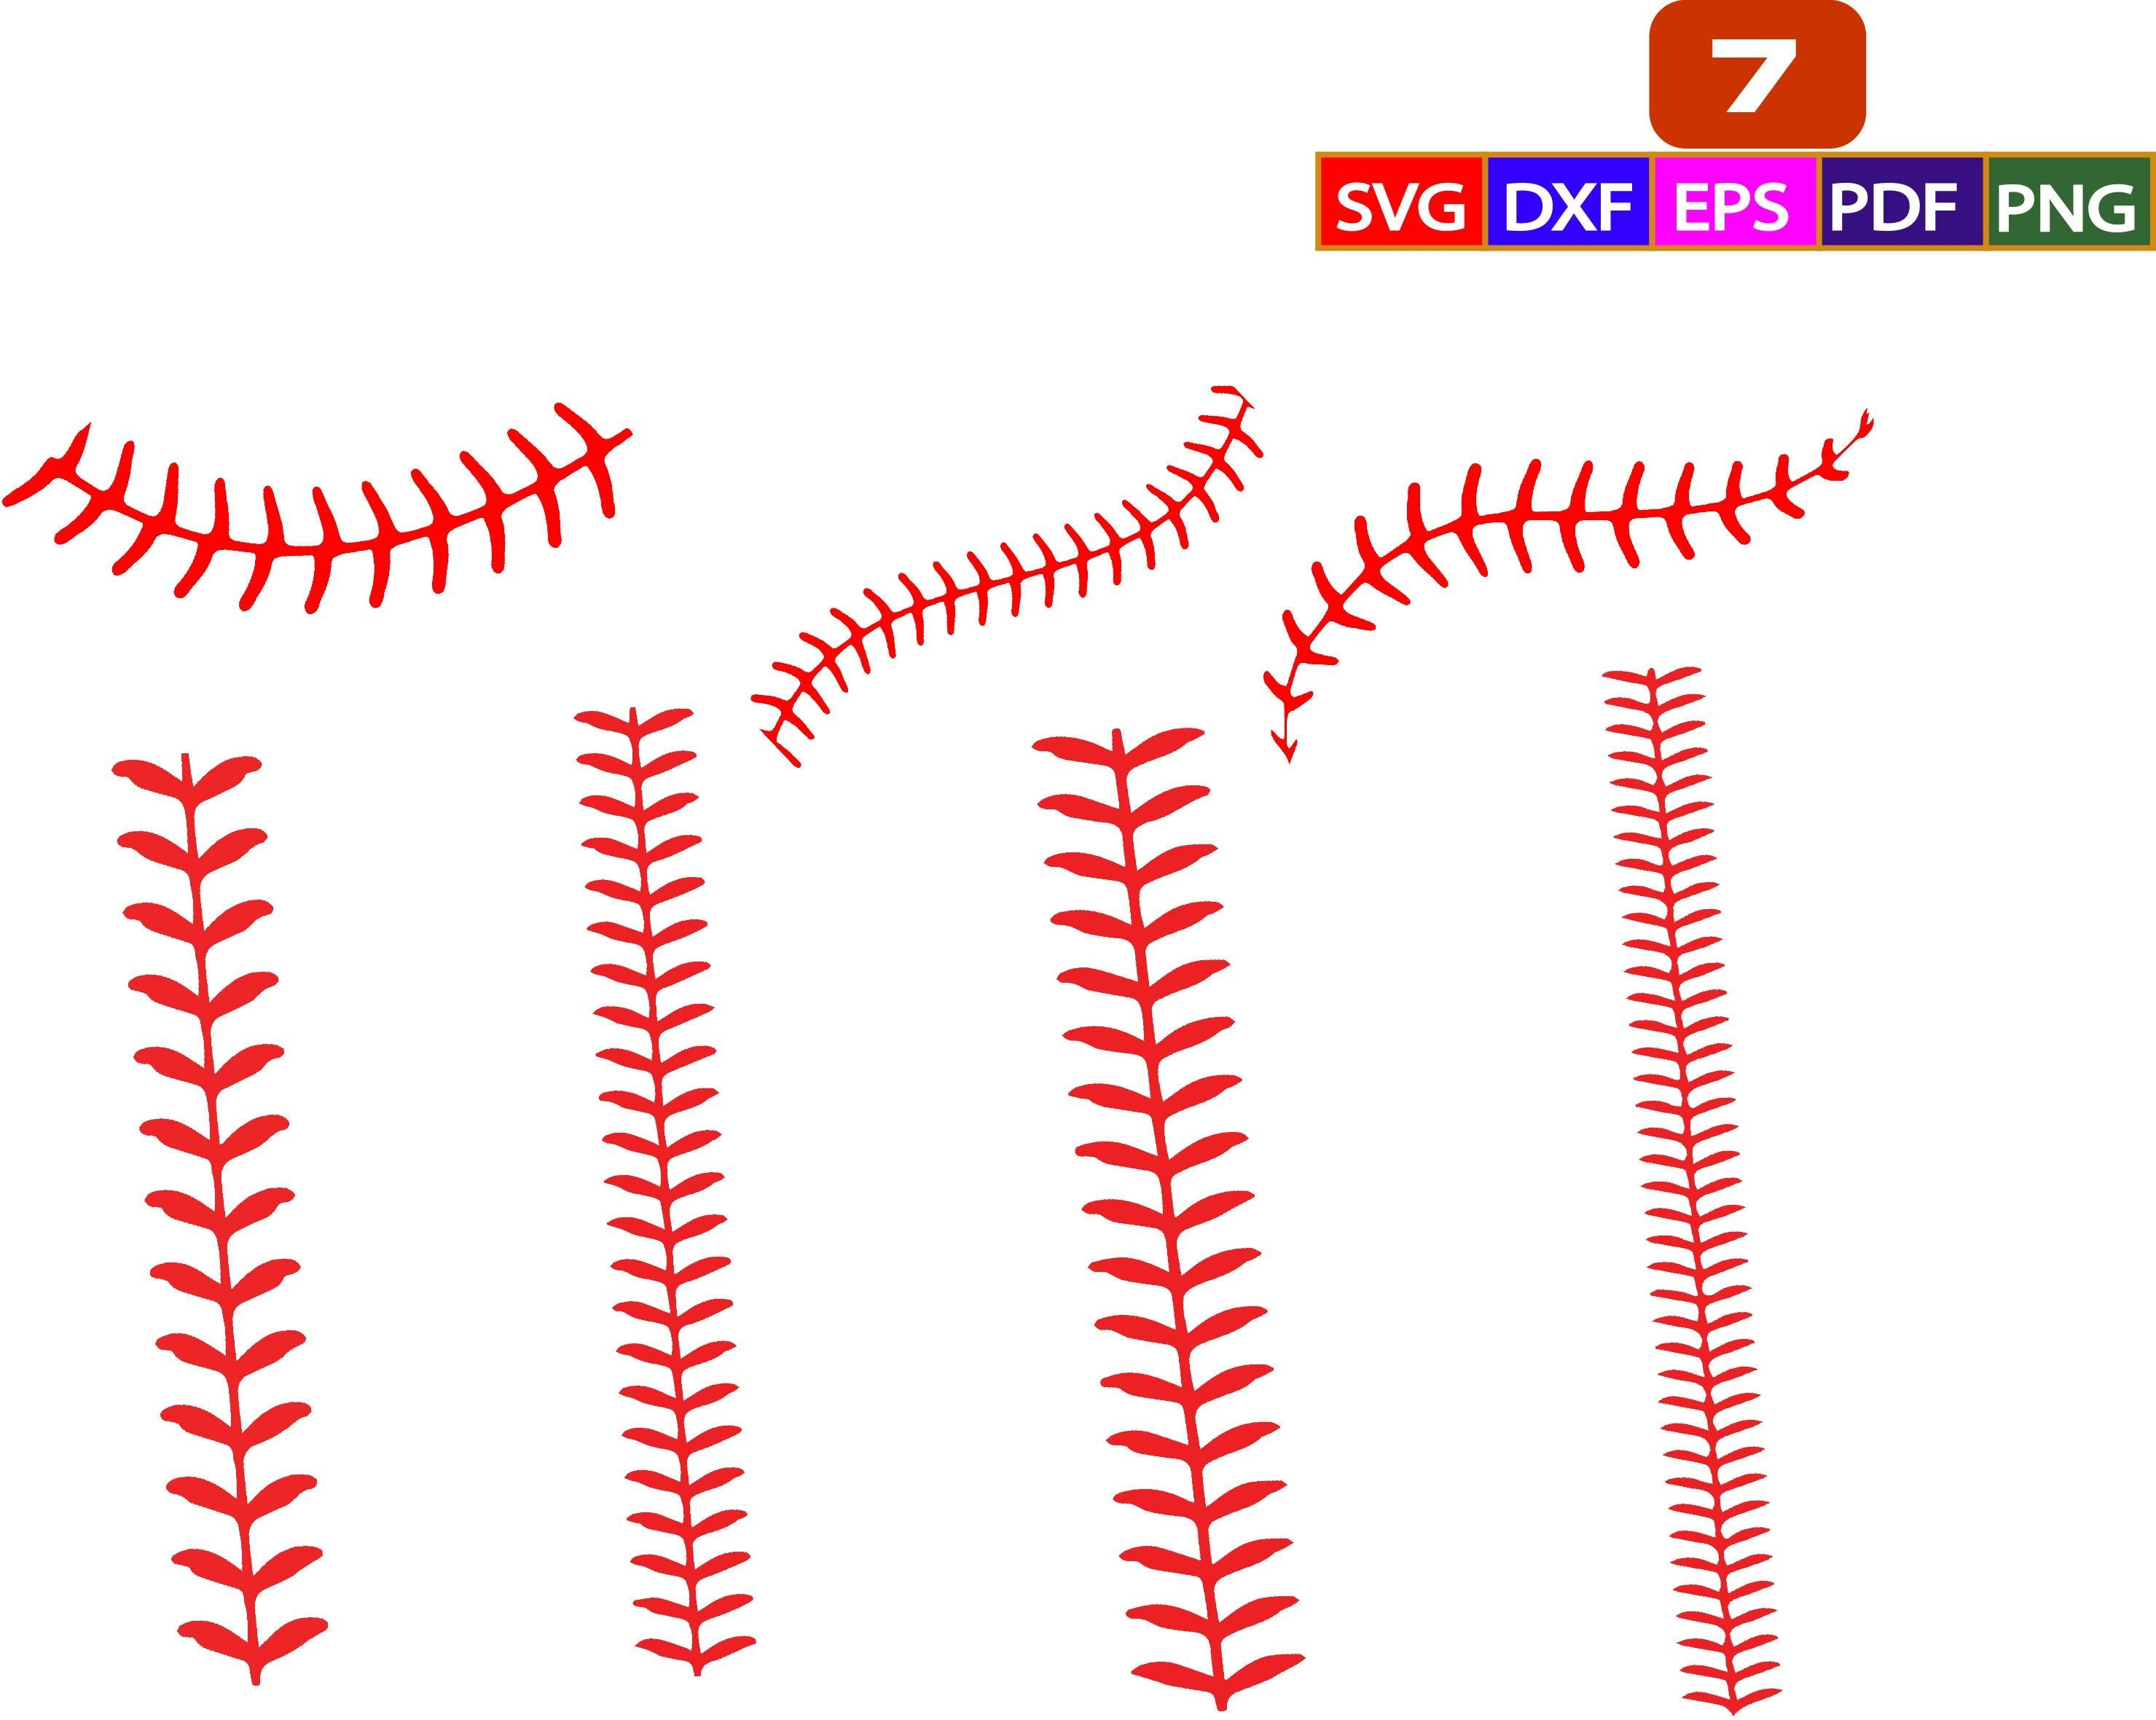 Clipart Red Baseball Lace Stitches Royalty Free Vector Illustration By Chromaco 1089309 Free Vector Illustration Clip Art Vector Free